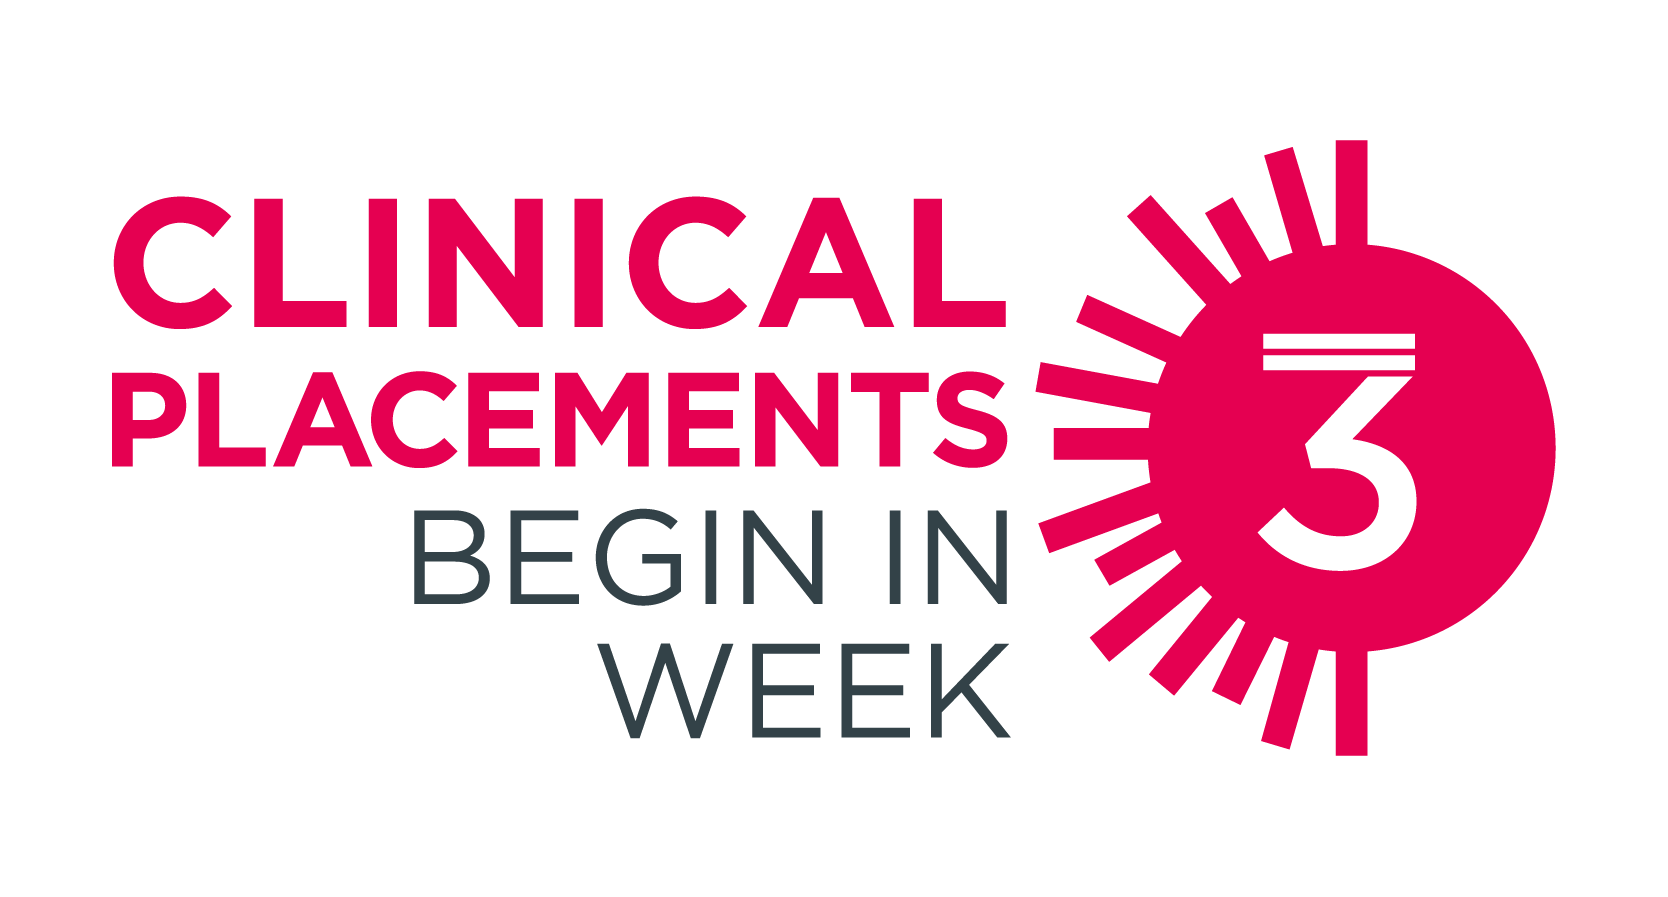 Clinical placements begin in week 3